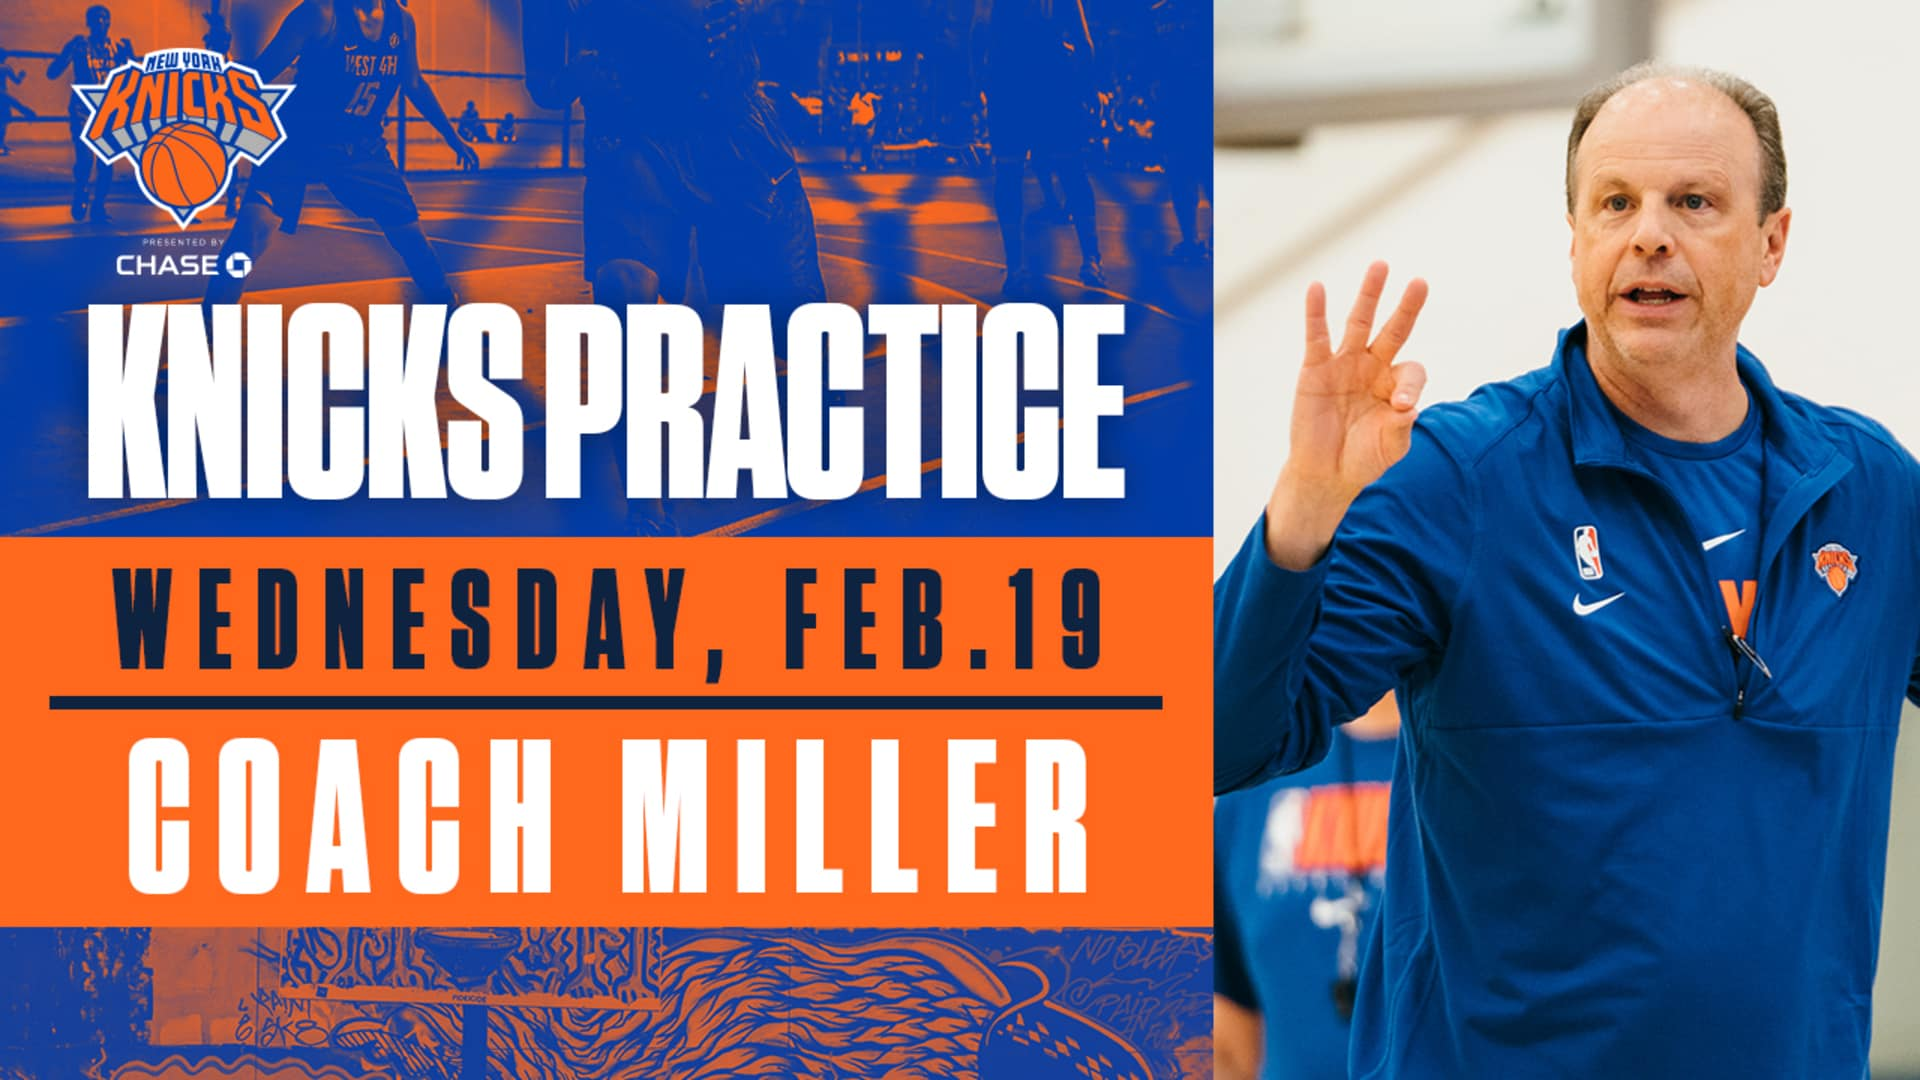 Knicks Practice: Coach Miller | February 19